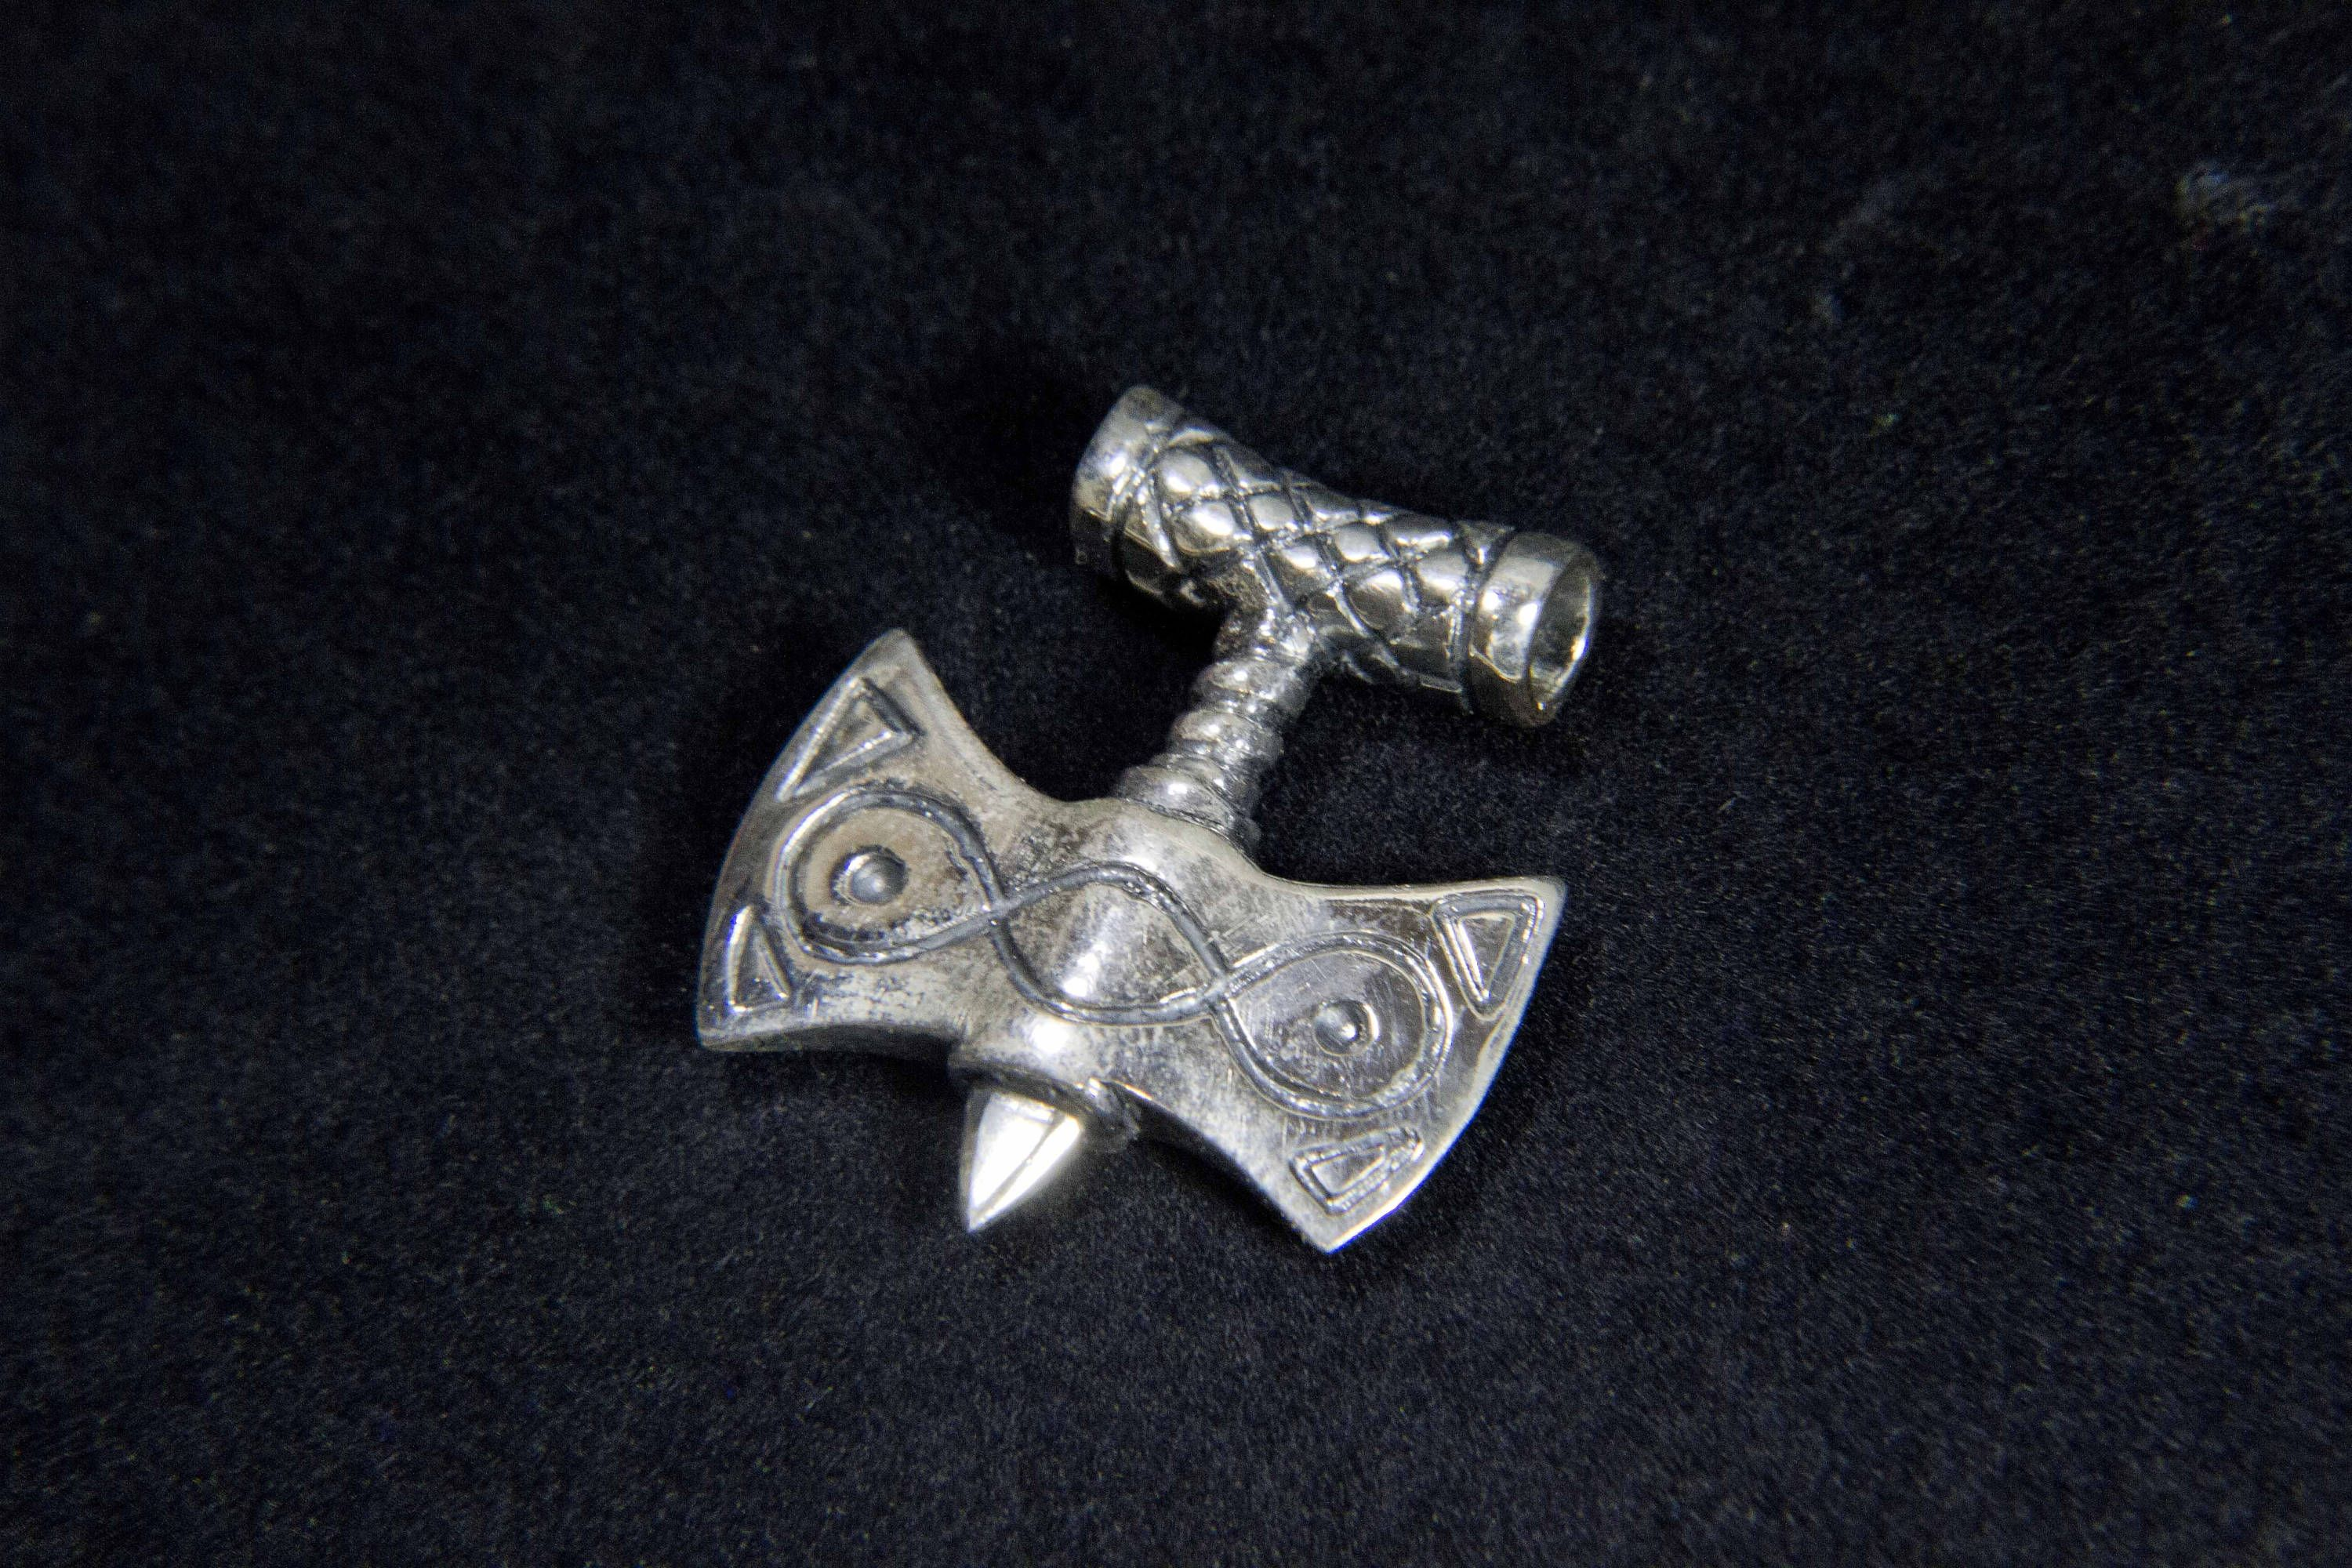 Amulet Of Talos this is a hand crafted sterling silver amulet of talos based